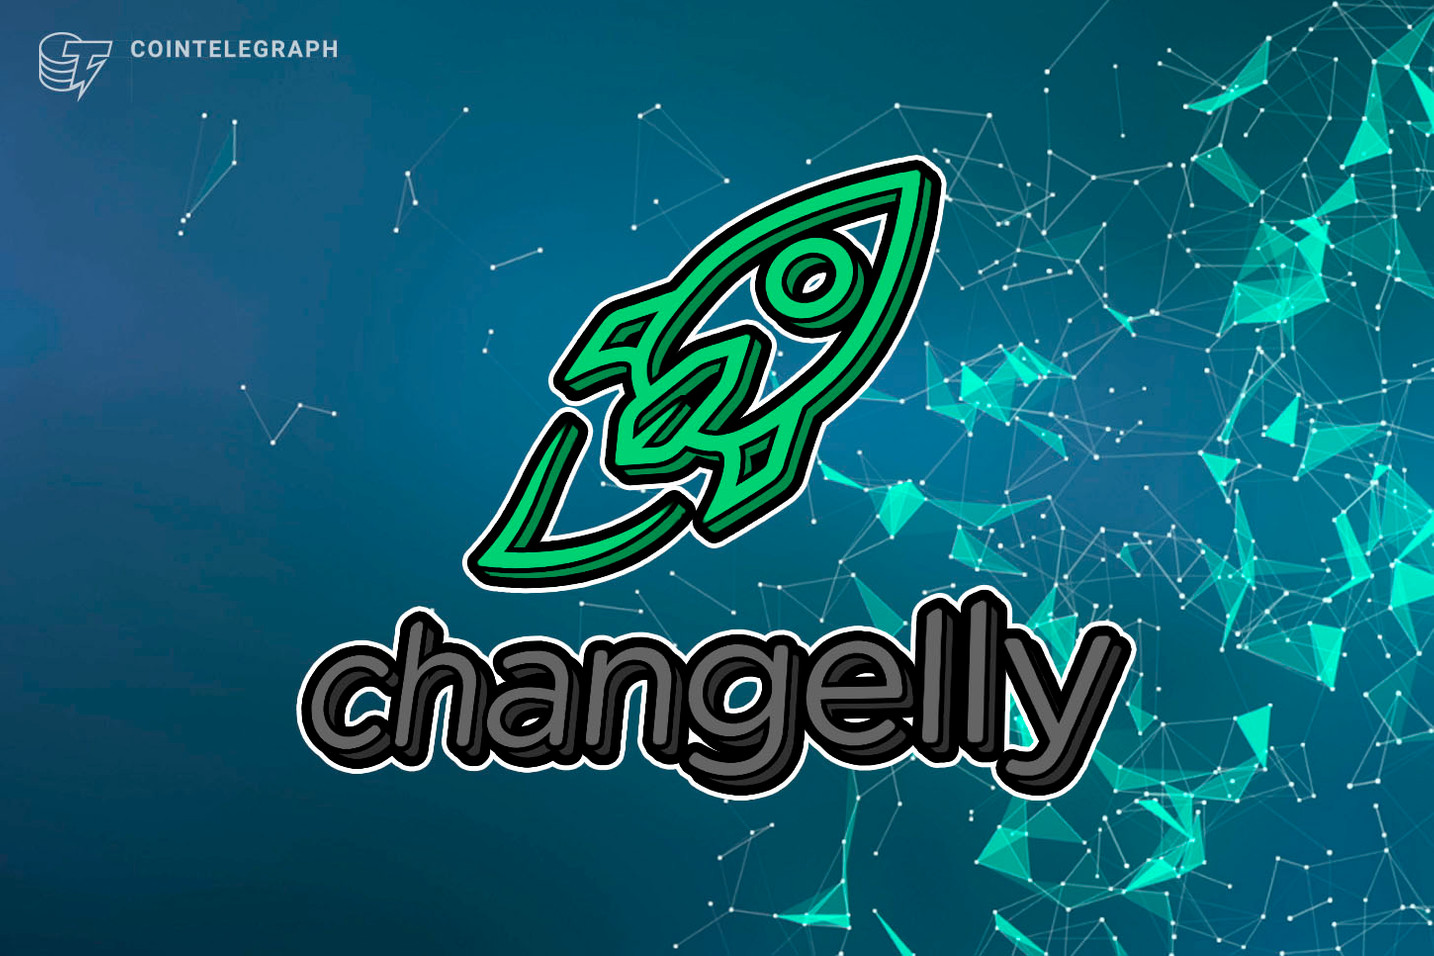 Changelly and Changelly PRO welcome wLITI token